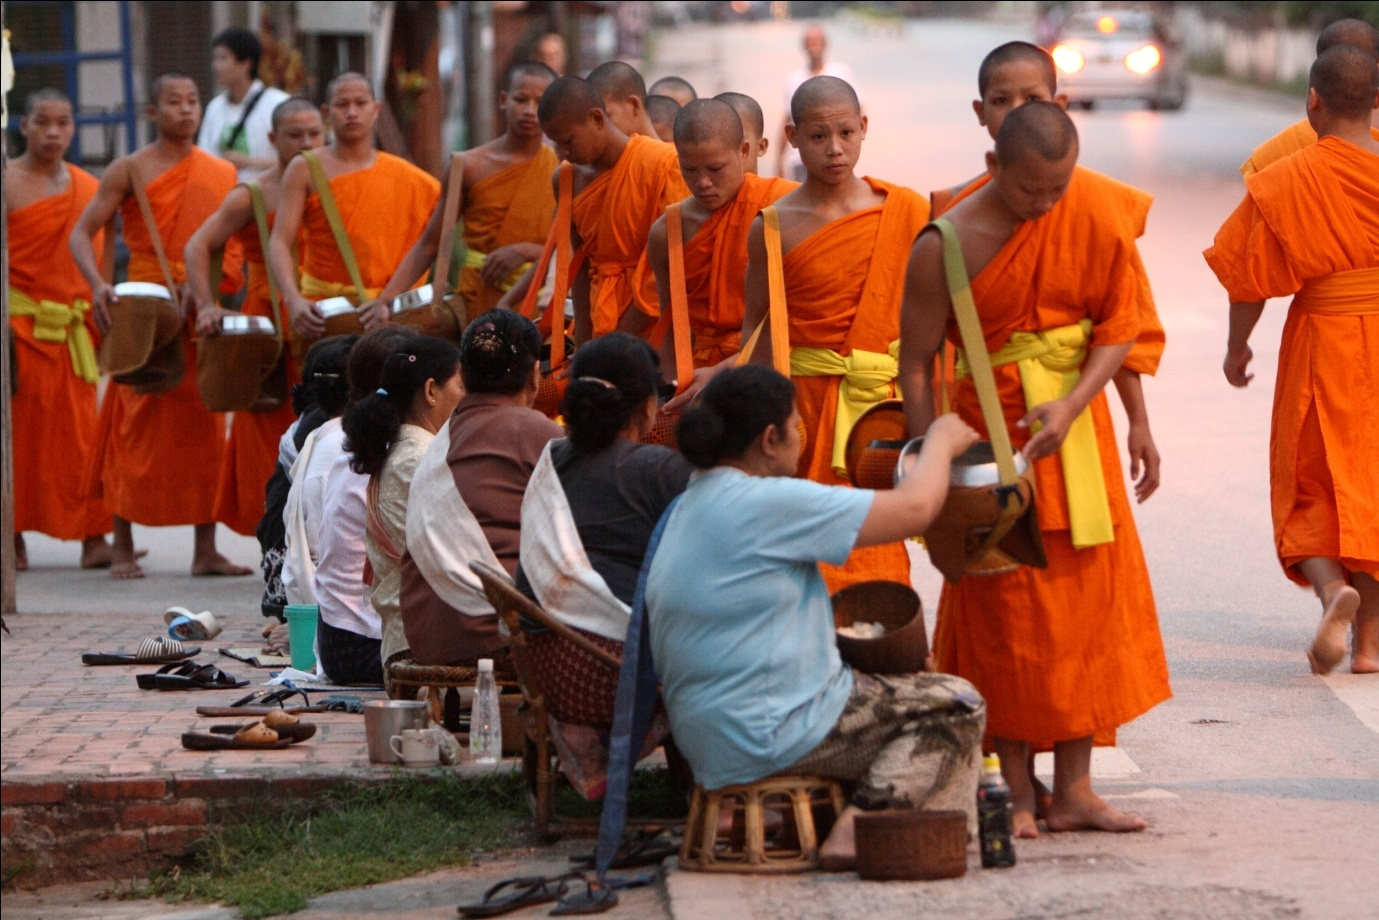 Monks collect alms at dawn in Luang Prabang